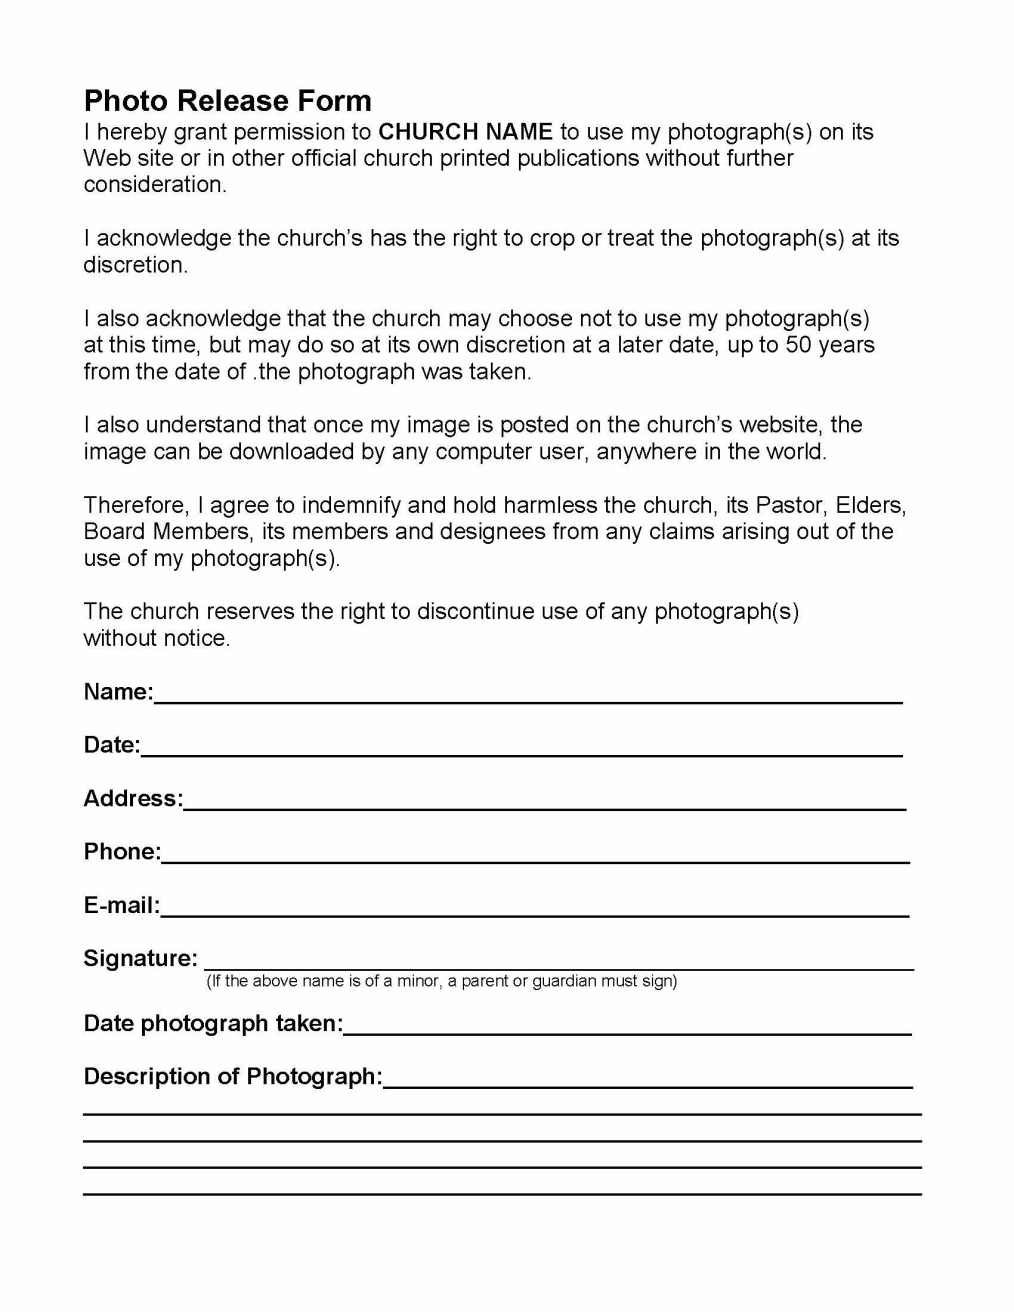 Photo Permission Forms  Churches Church Nursery And Youth Ministry